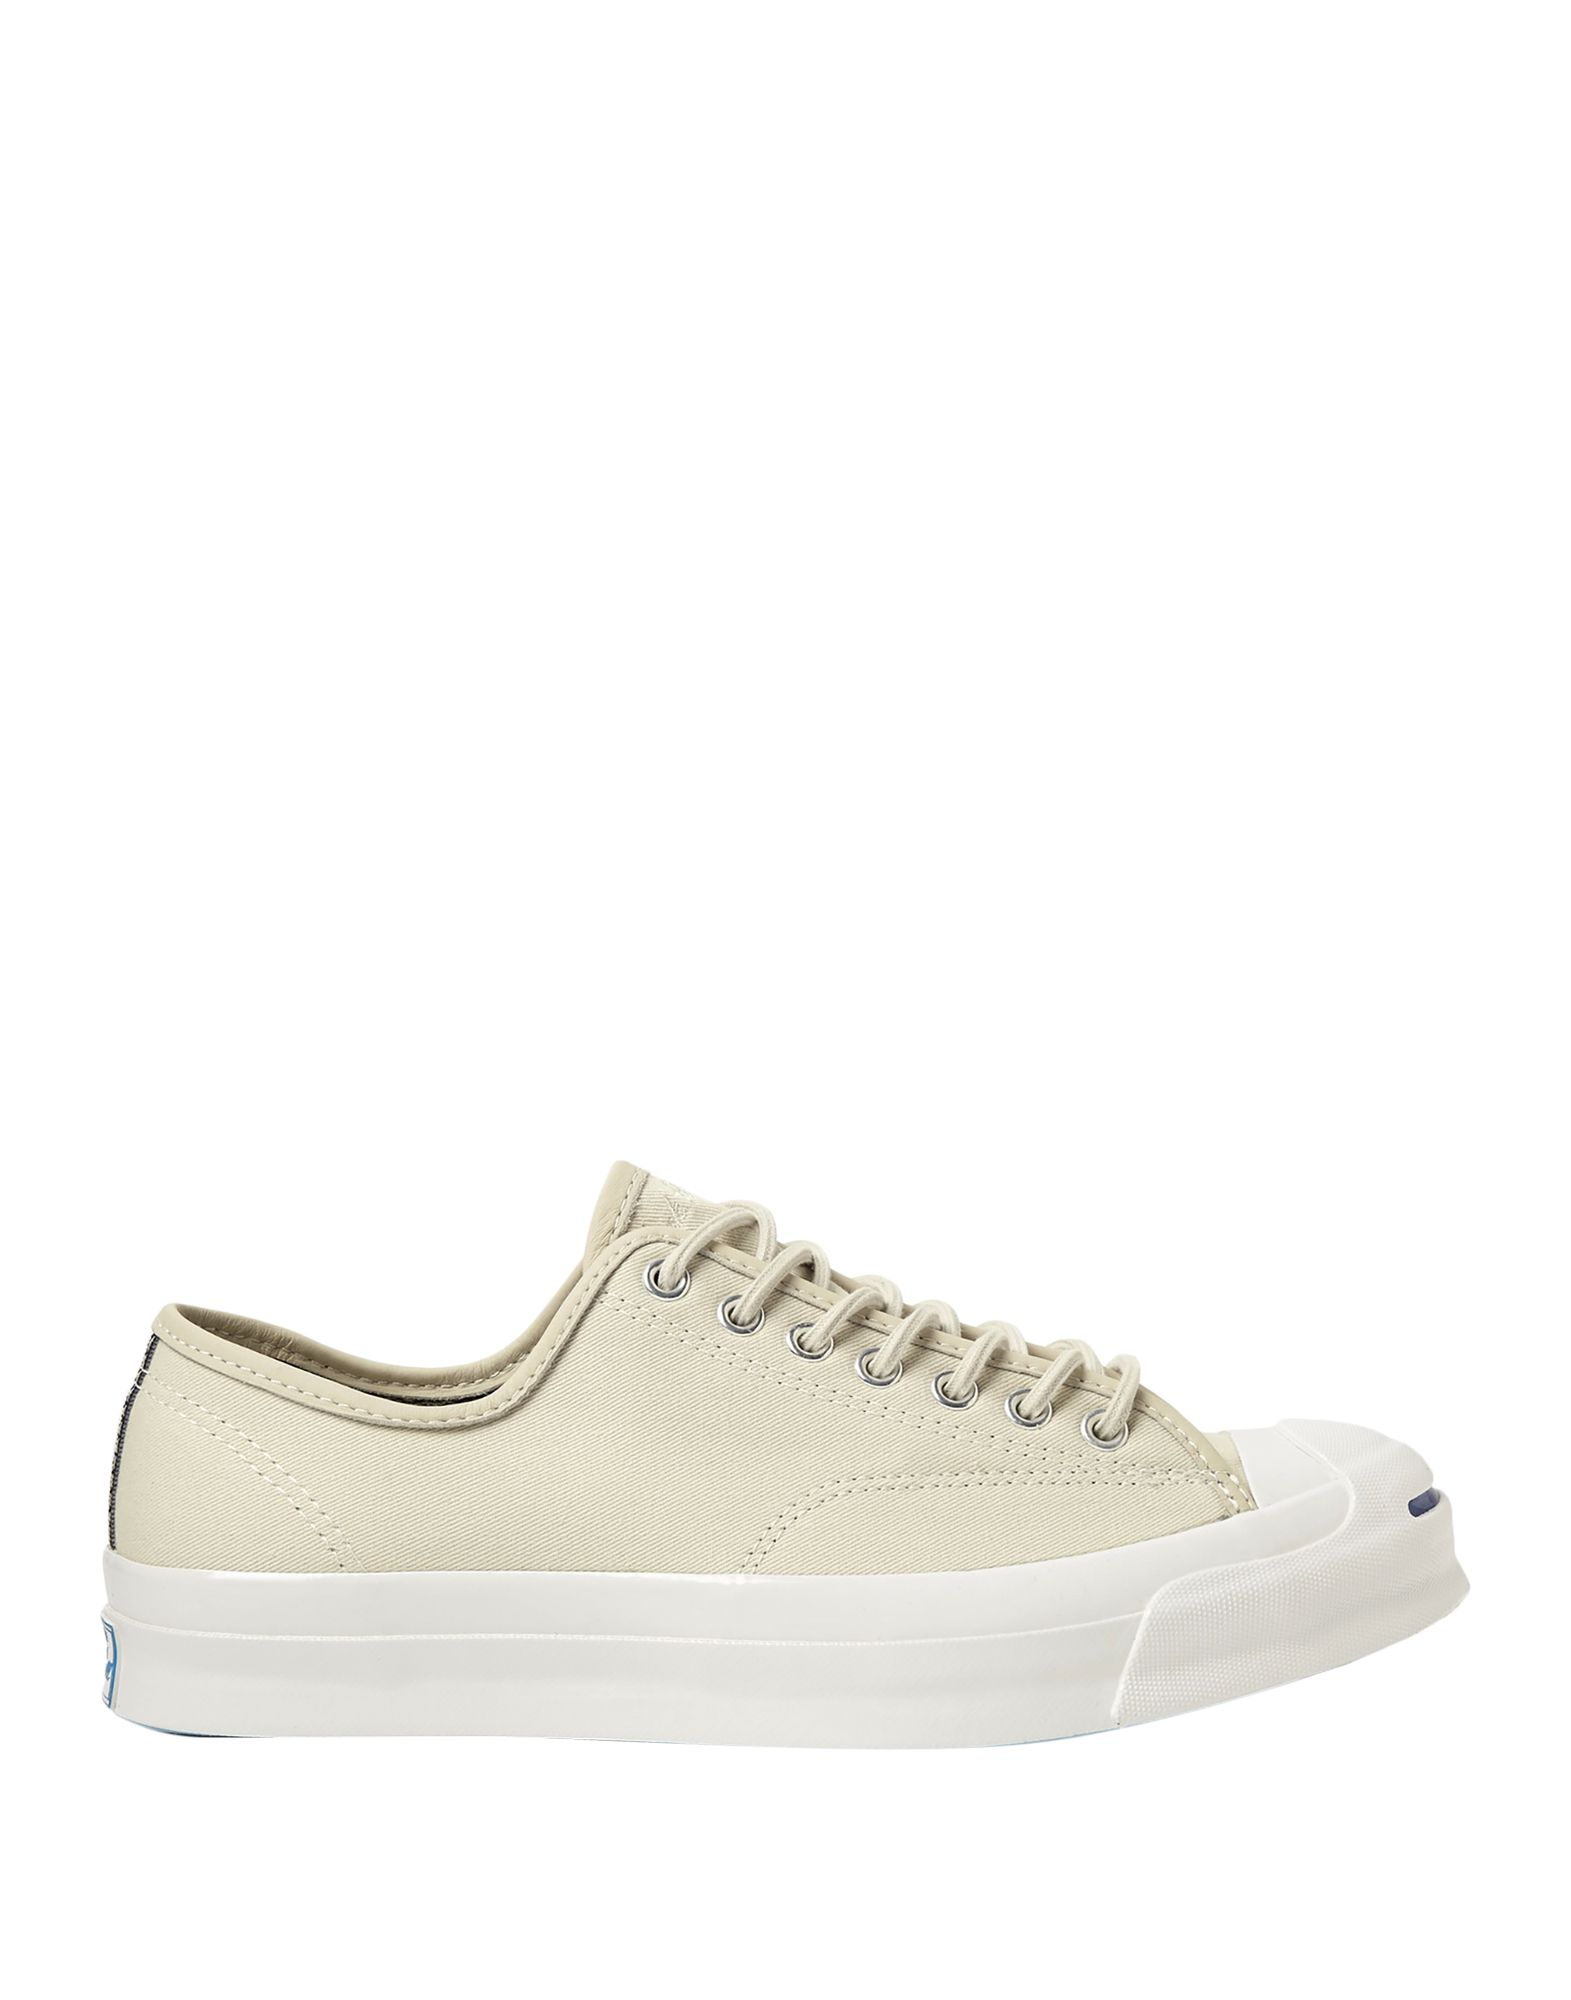 Converse Jack Purcell Sneakers - Women online Converse Jack Purcell Sneakers online Women on  United Kingdom - 11553866AG f498bb